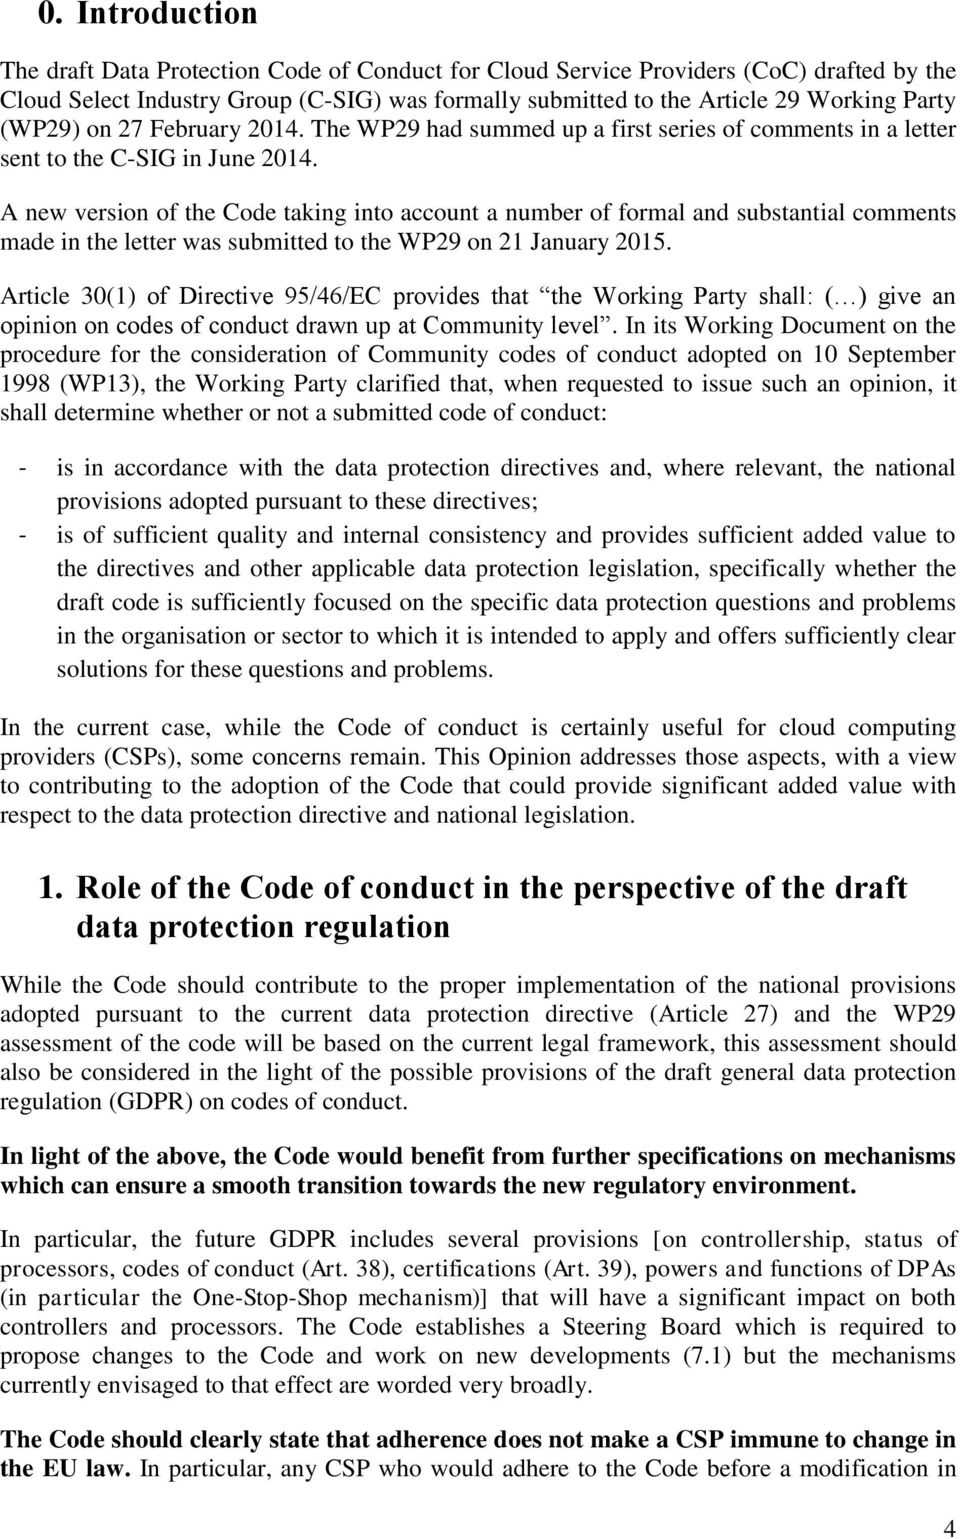 A new version of the Code taking into account a number of formal and substantial comments made in the letter was submitted to the WP29 on 21 January 2015.